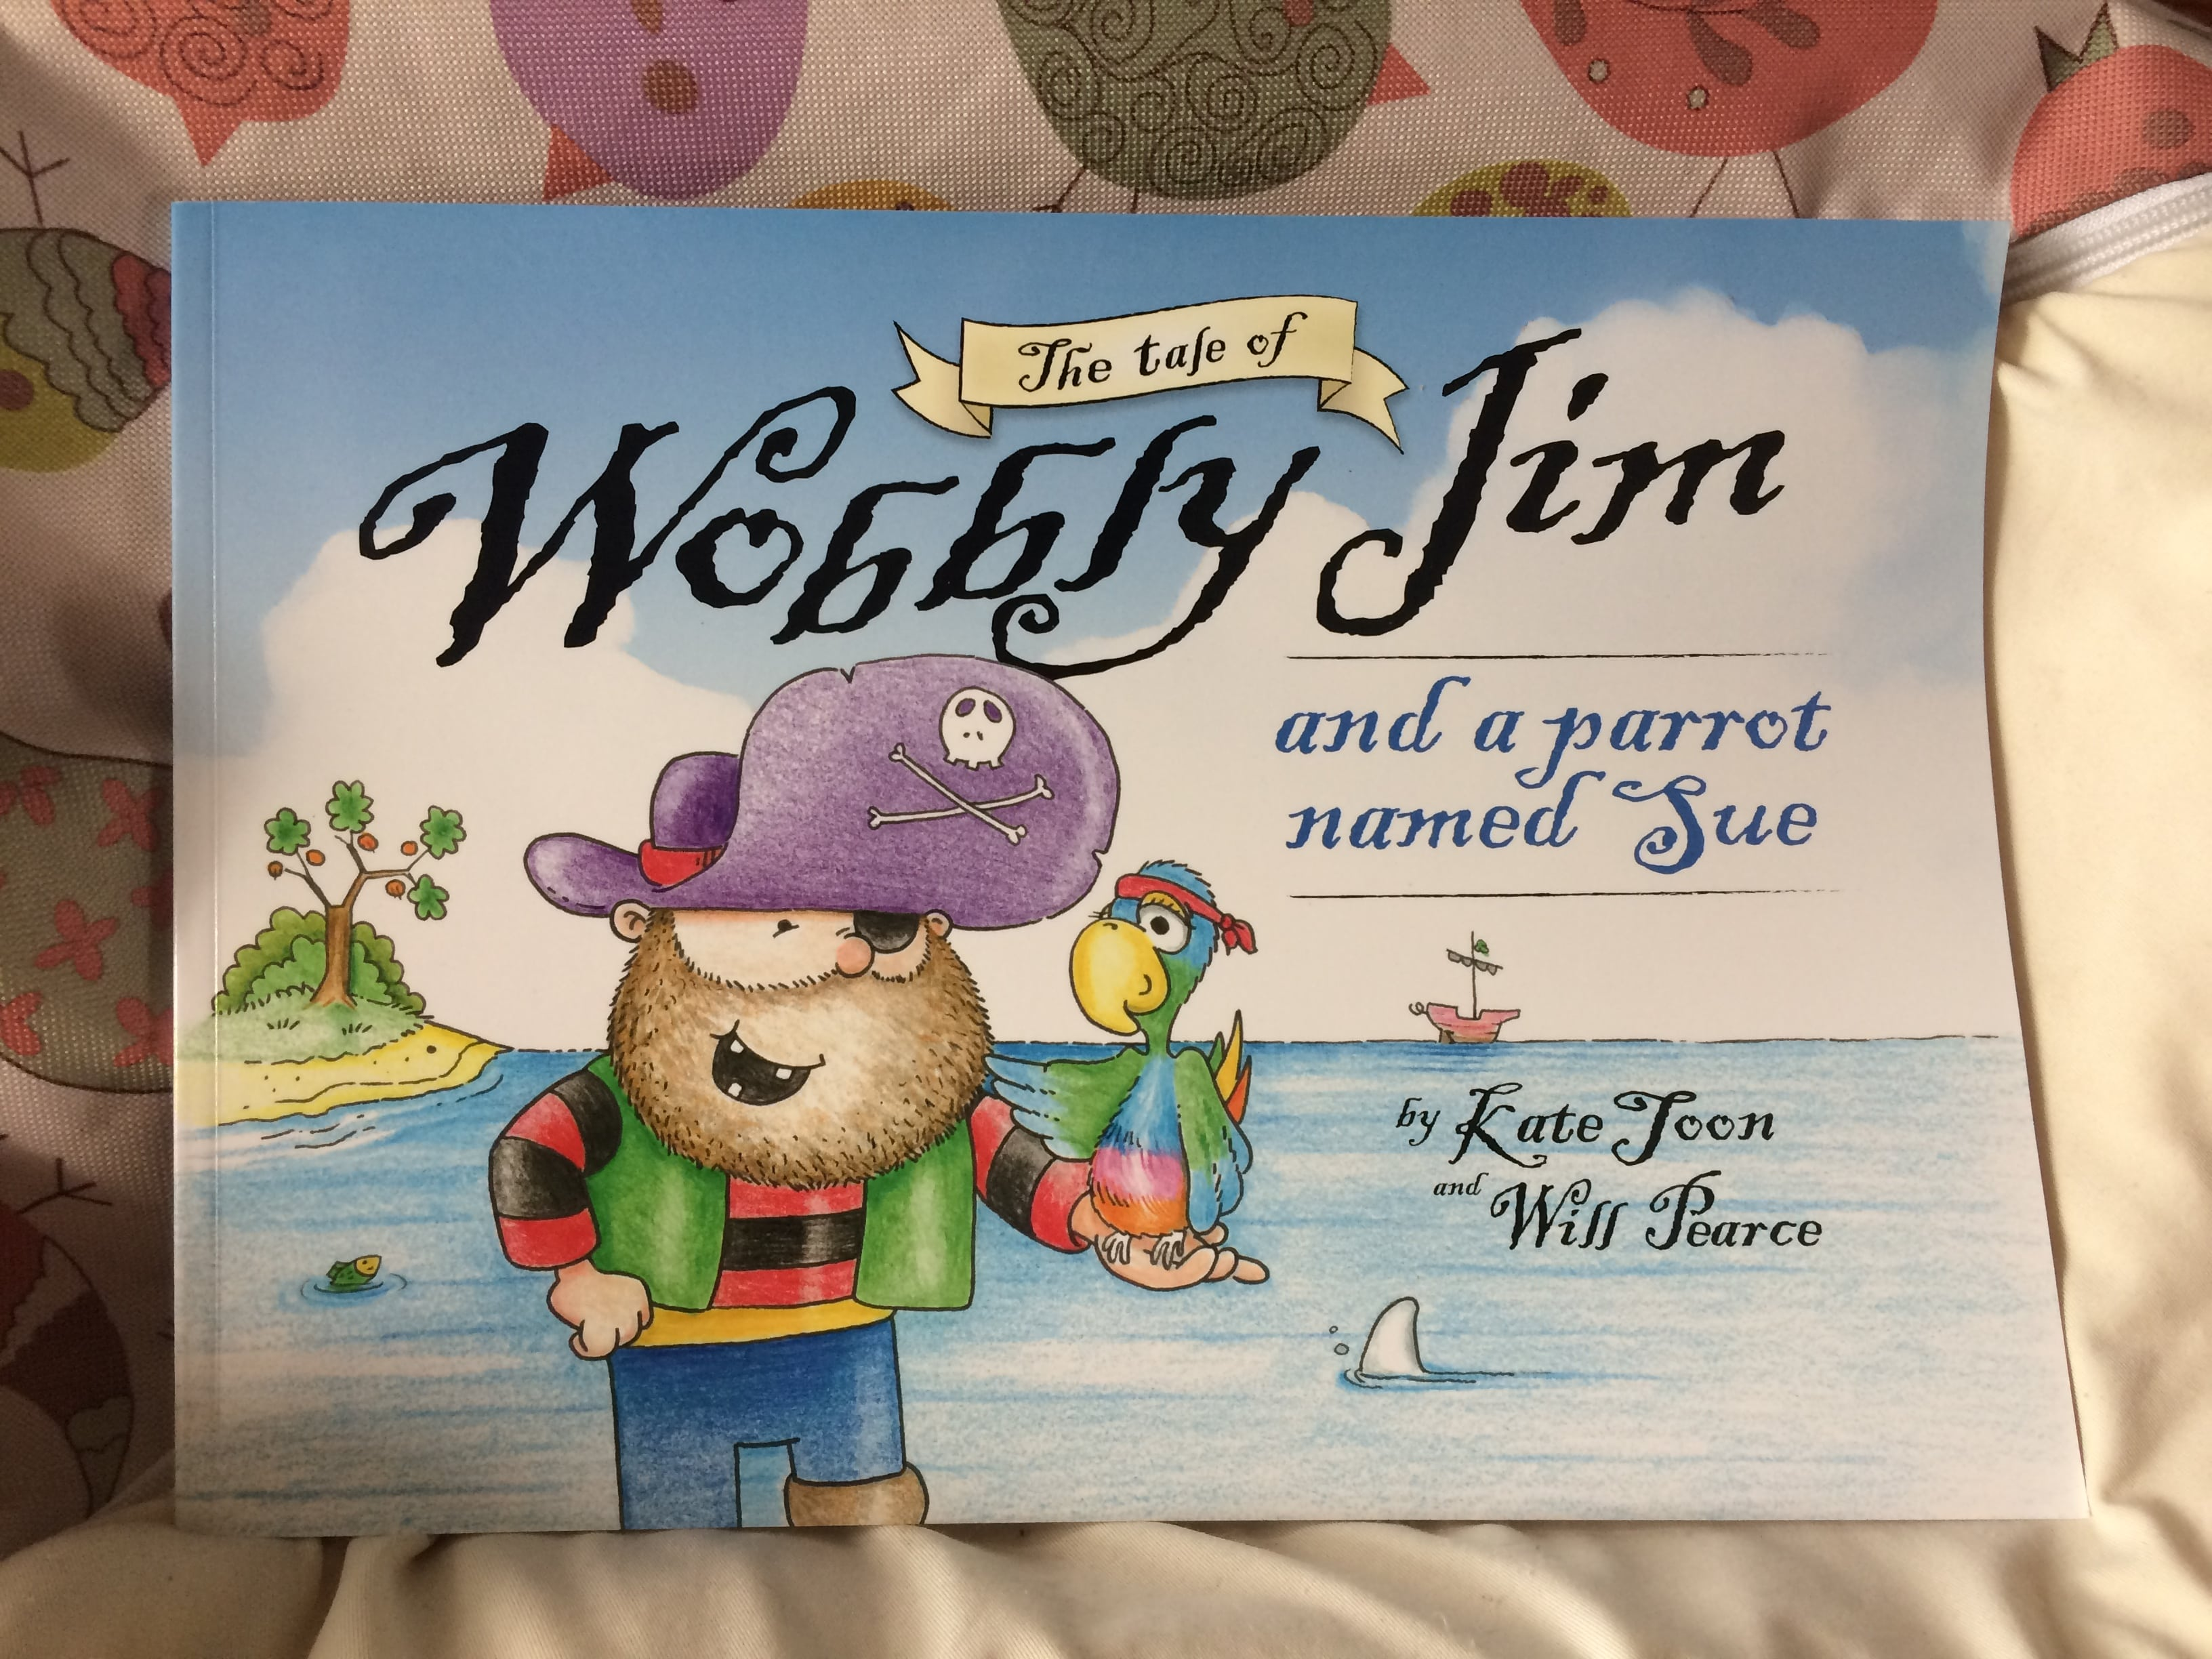 The Tale of Wobbly Jim and a Parrot Named Sue – Book Review